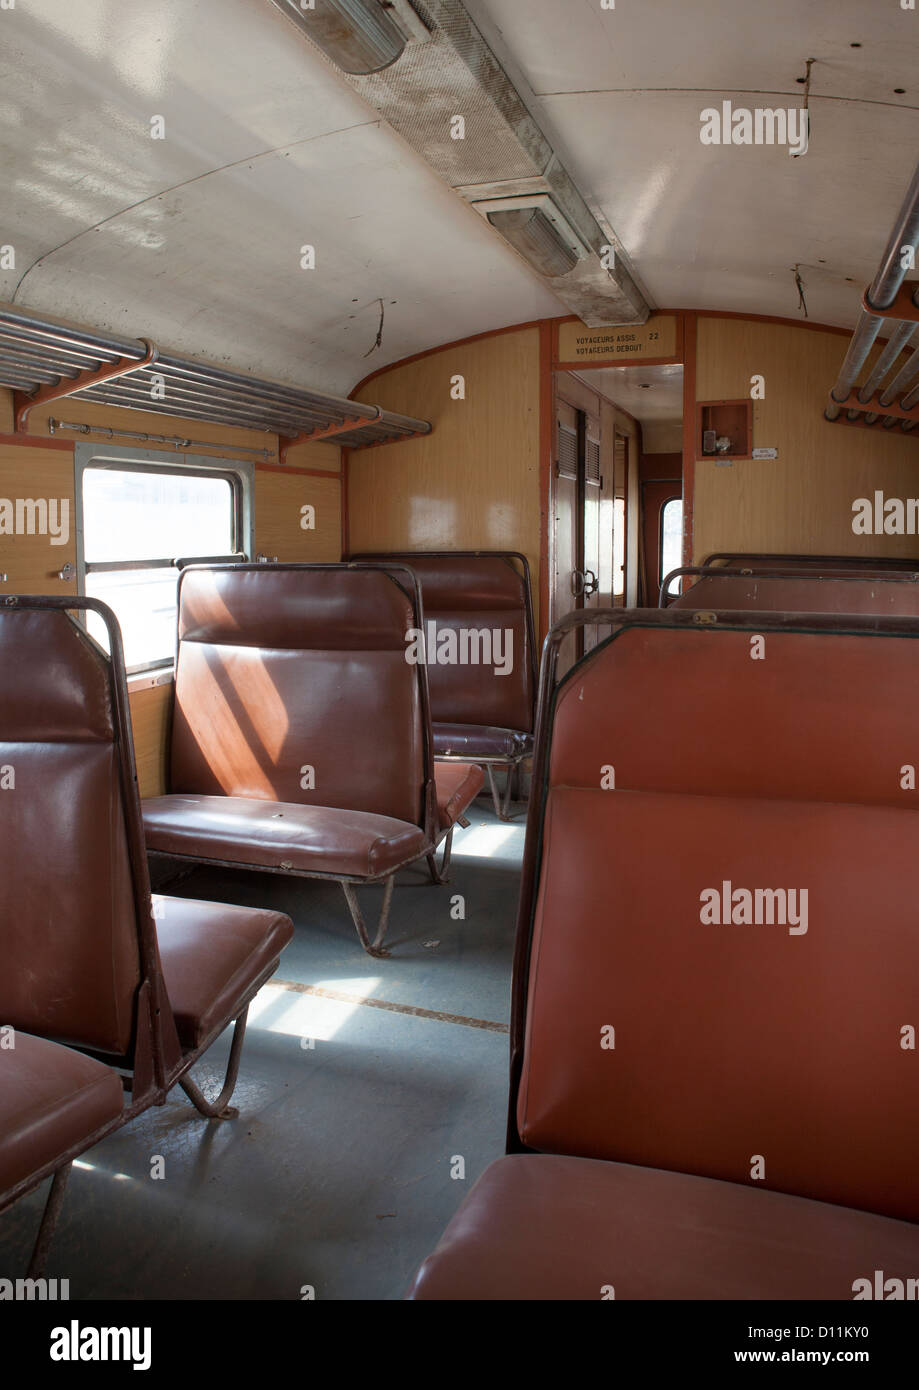 Inside Djibouti Addis Ababa Old Train Second Class, Dire Dawa Train Station, Ethiopia - Stock Image